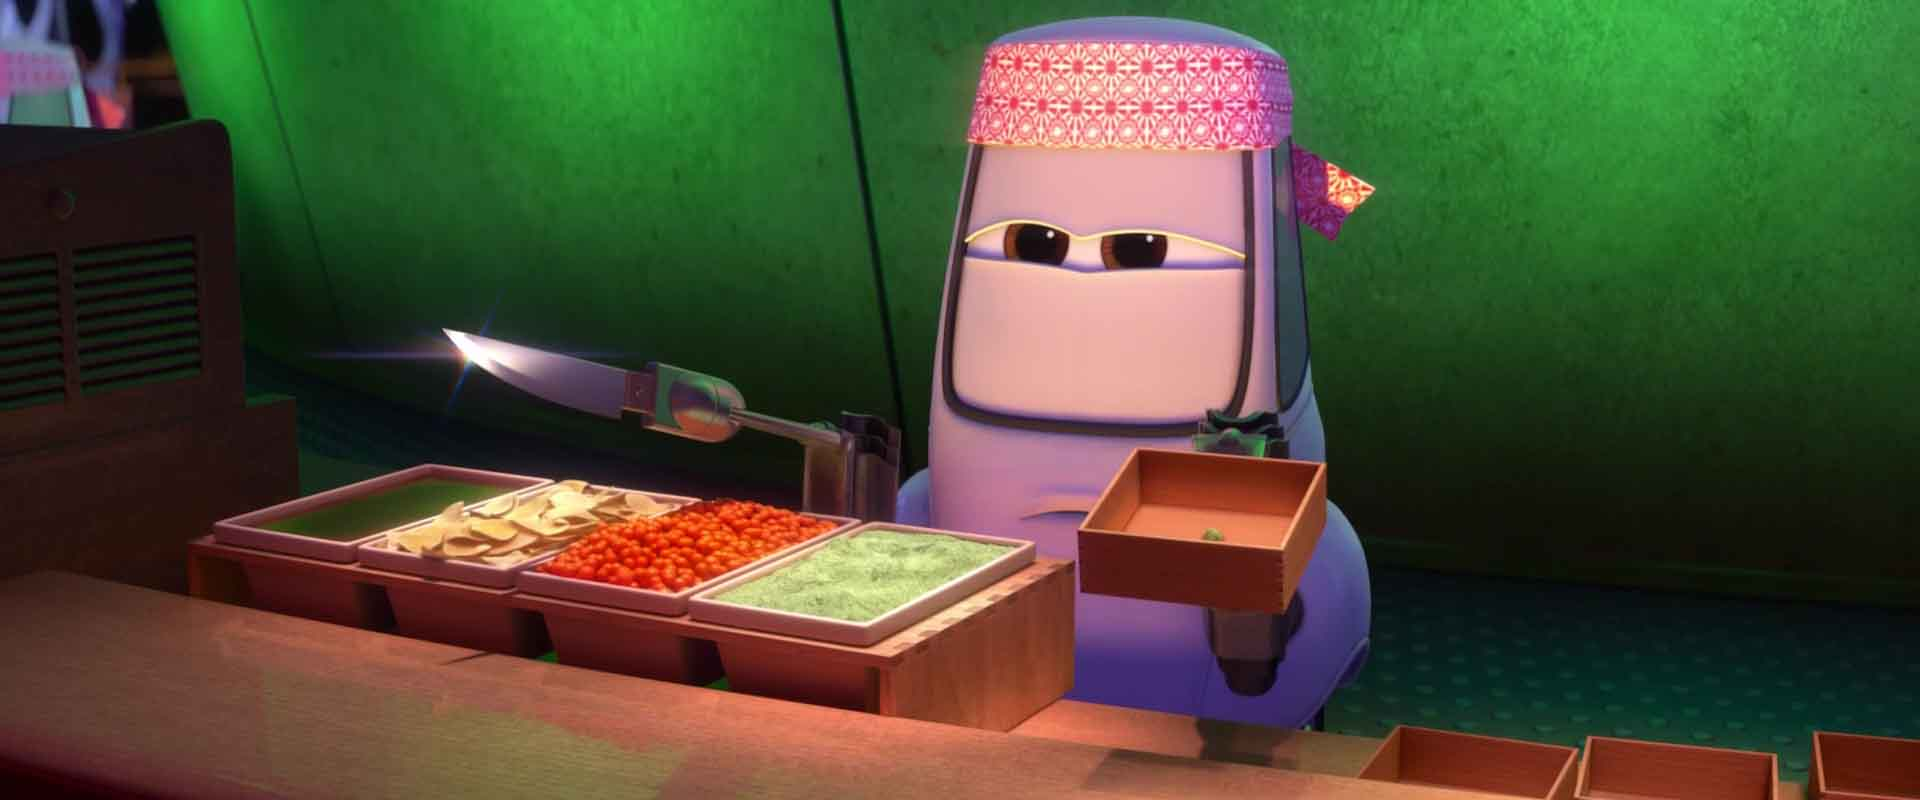 chef sushi personnage character pixar disney cars 2